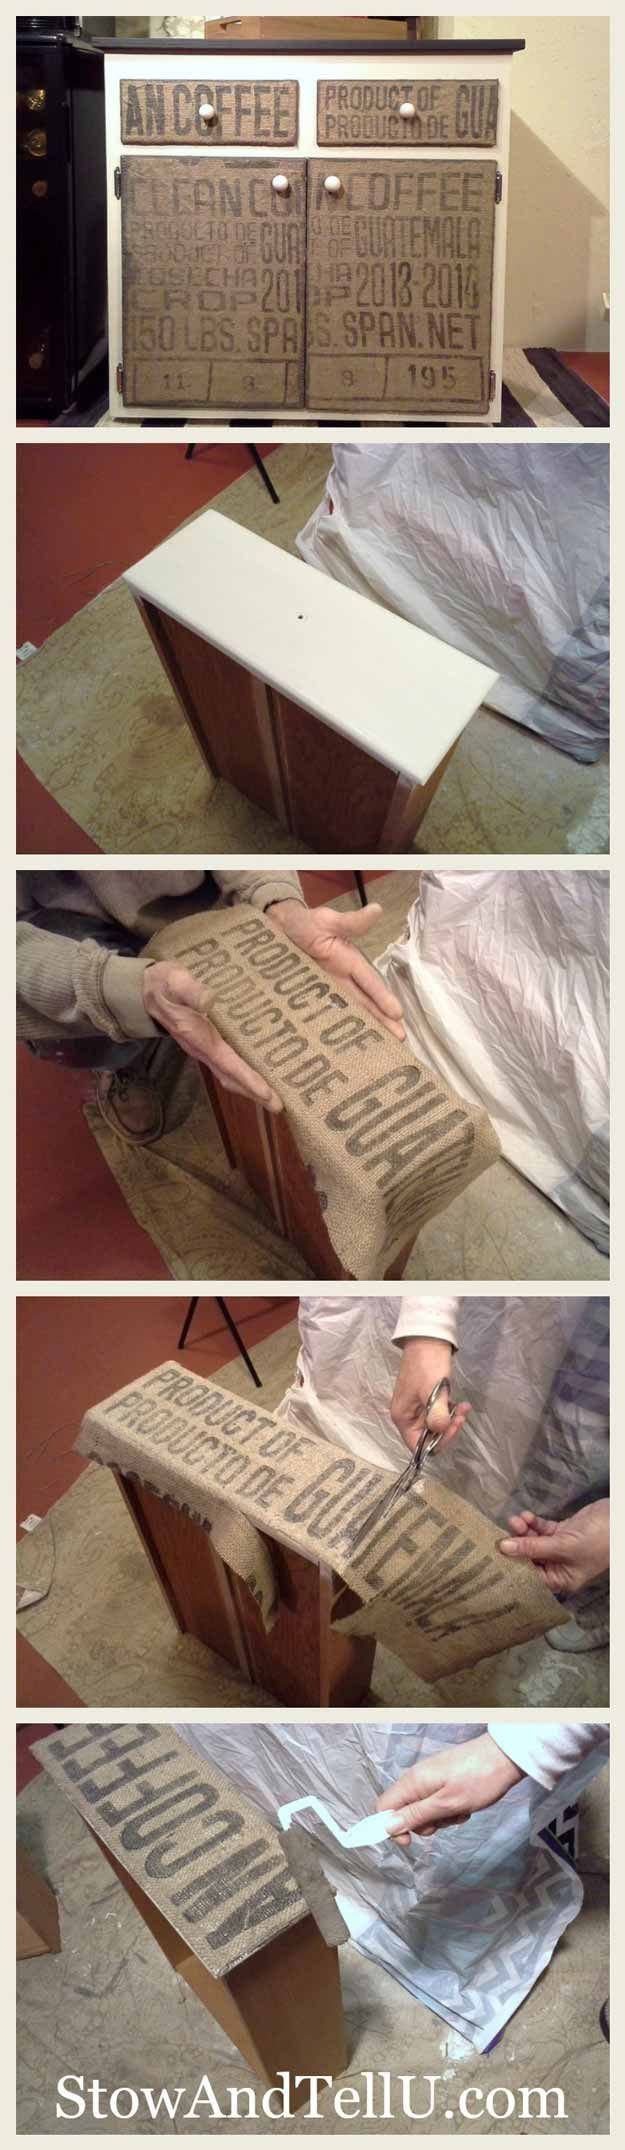 Burlap Sacks | 15 Burlap Sack Uses (Not Just a Bag of Potatoes) | DIY Craft Projects To Home Decor by Pioneer Settler at http://pioneersettler.com/15-burlap-sack-uses/